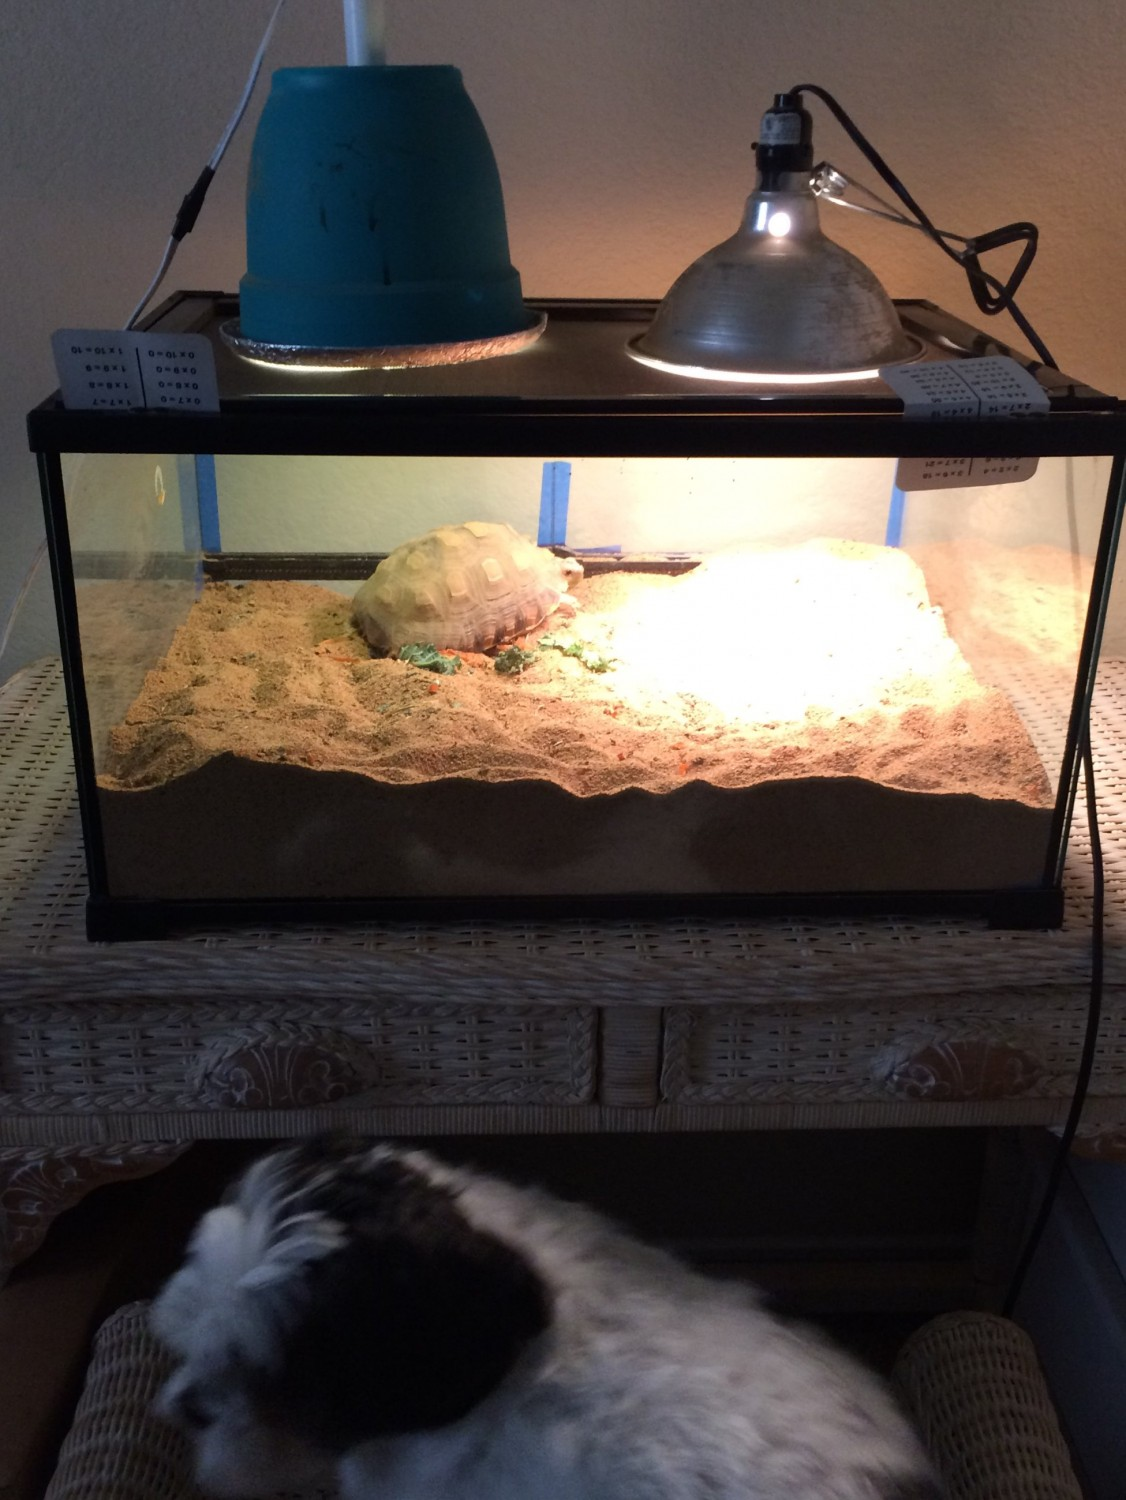 African Spurred Tortoise Reptiles For Sale   Spring, TX ...